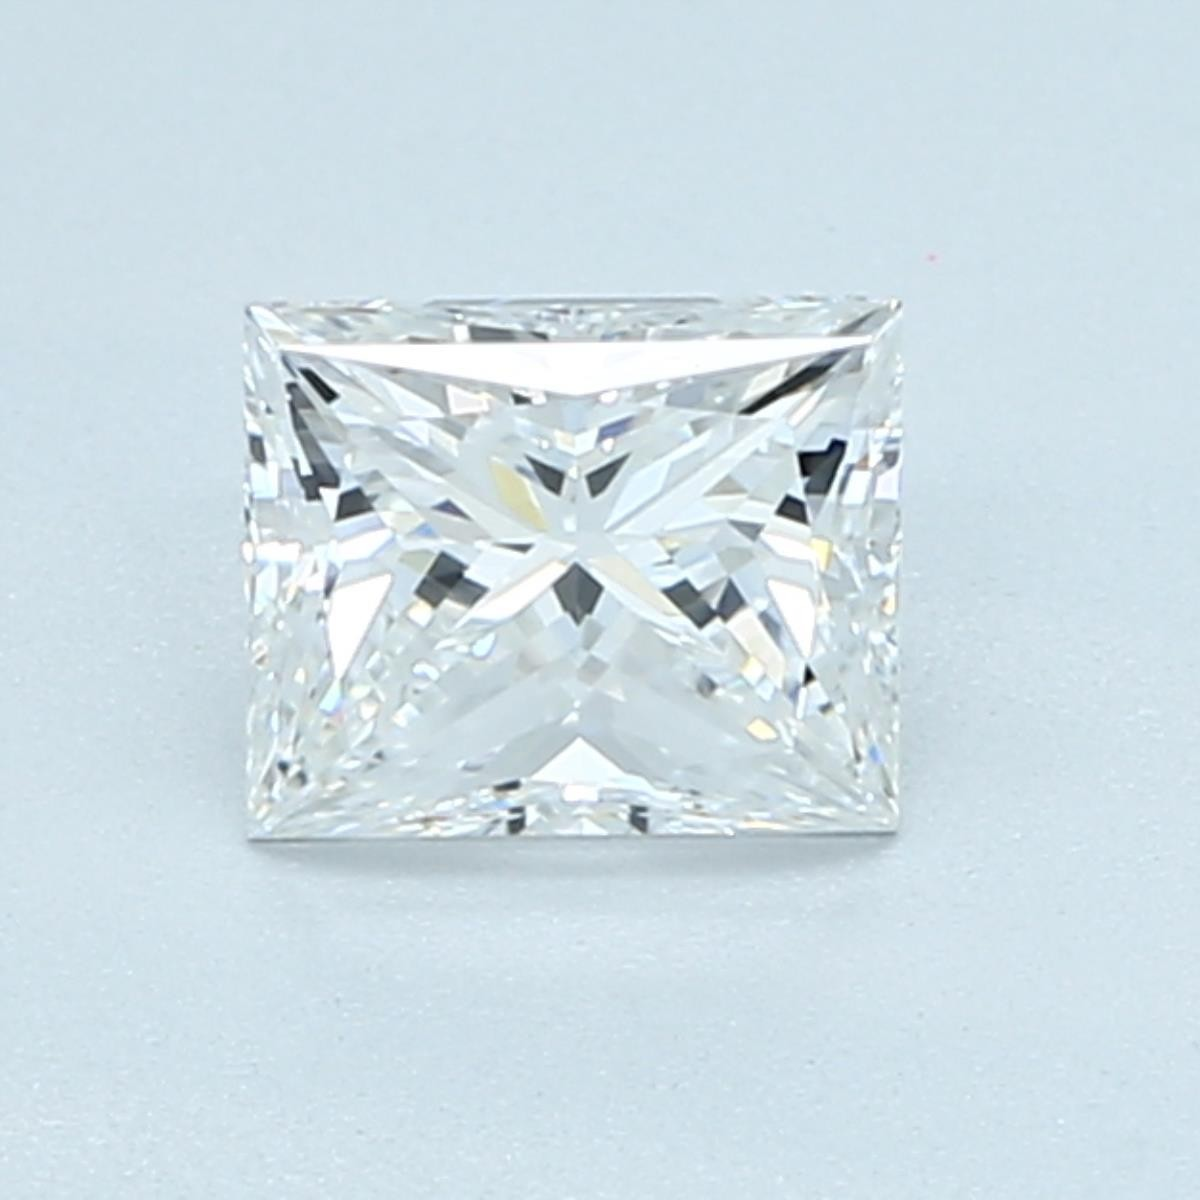 1 carat rectangular princess cut diamond with a length-to-width ratio of 1.15